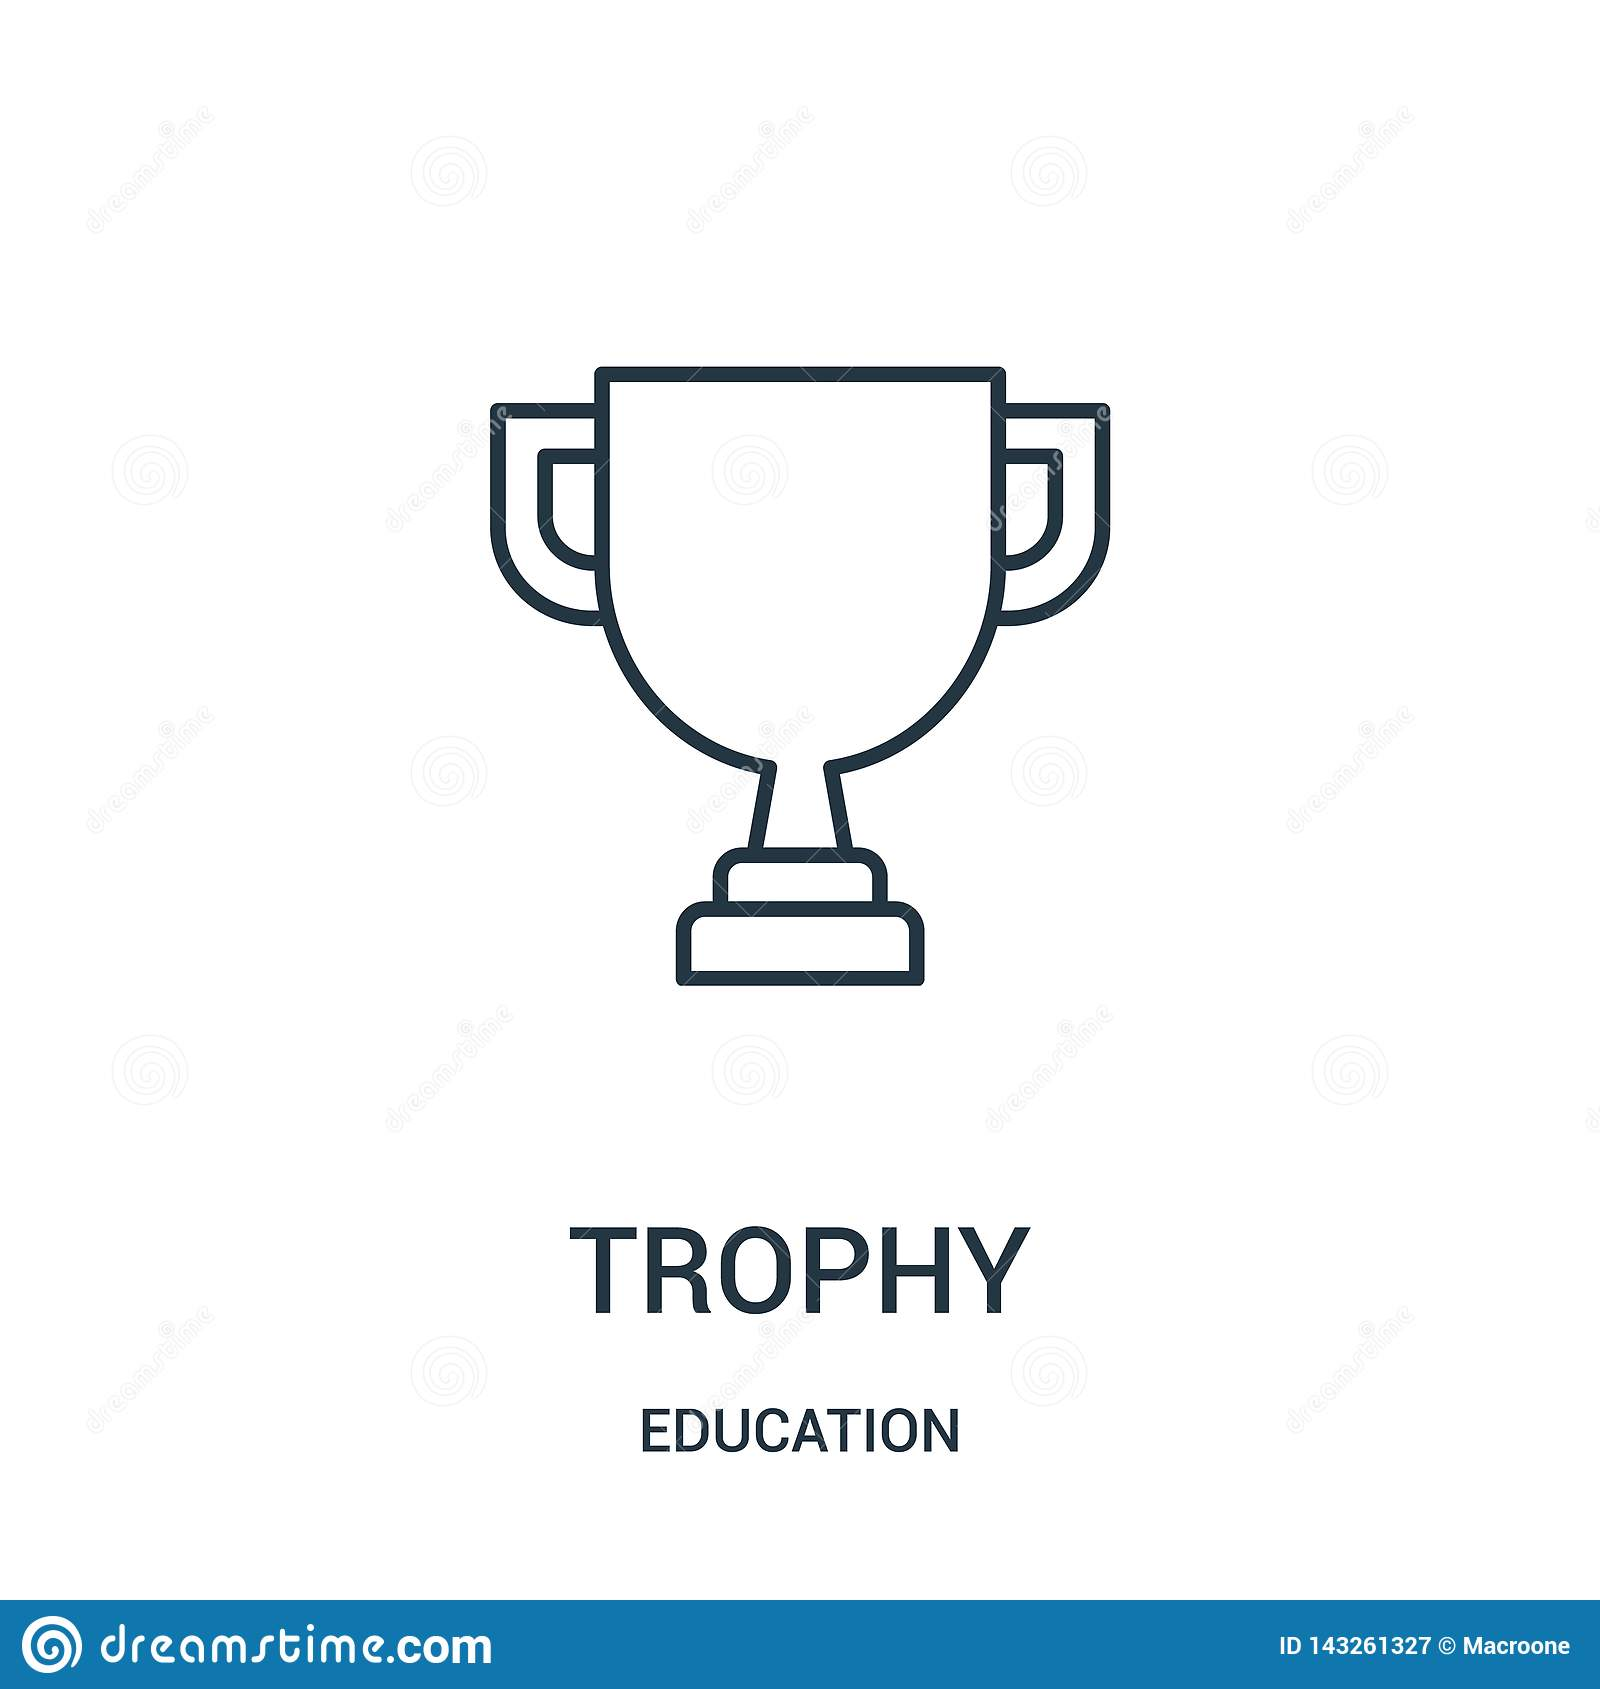 trophy icon vector from education collection. Thin line trophy outline icon vector illustration